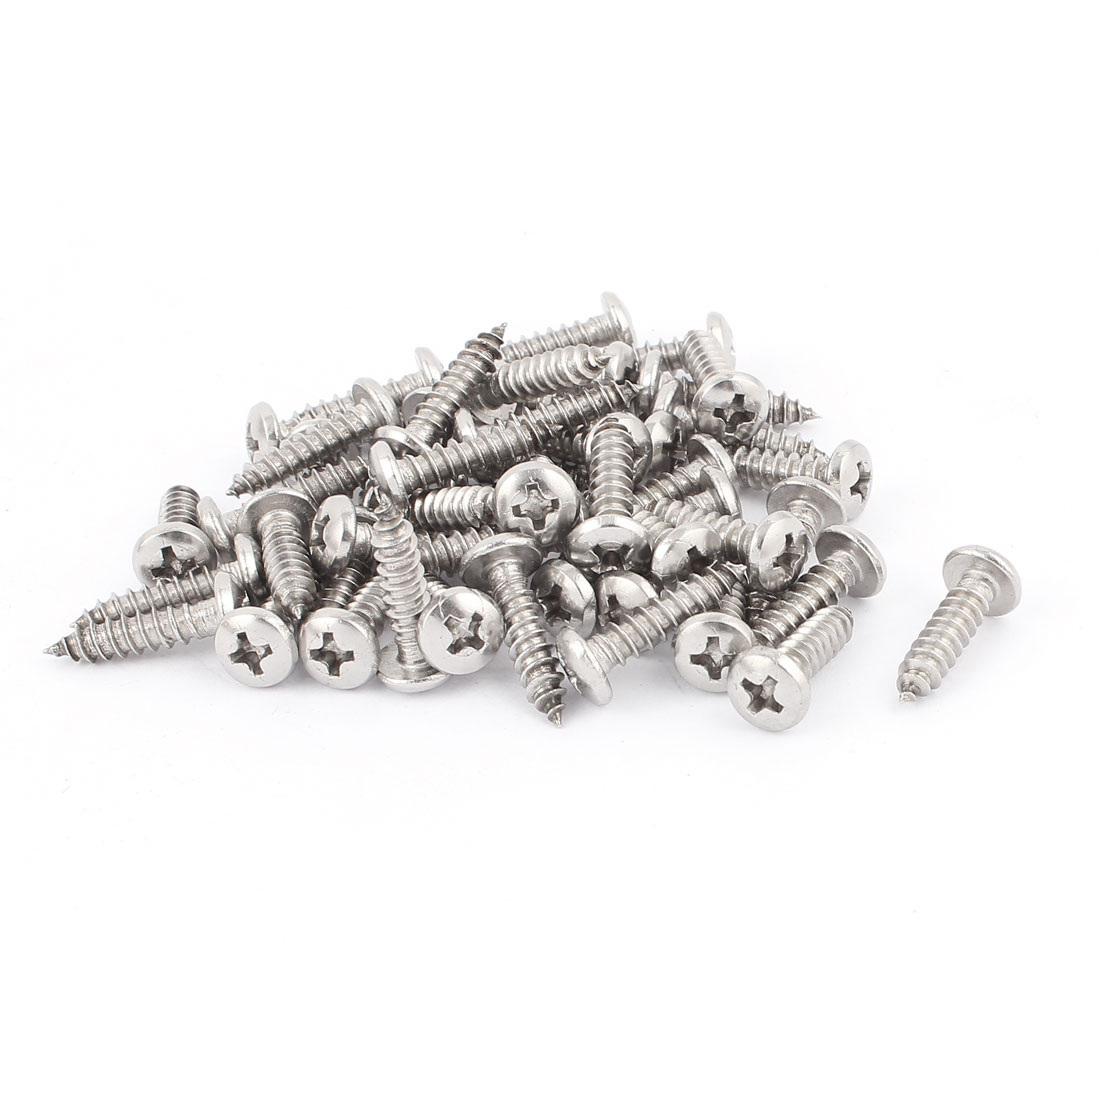 4.8mm x 21mm Phillips Cross Drive Pan Head Self Tapping Screw Fasteners Silver Tone 50 Pcs